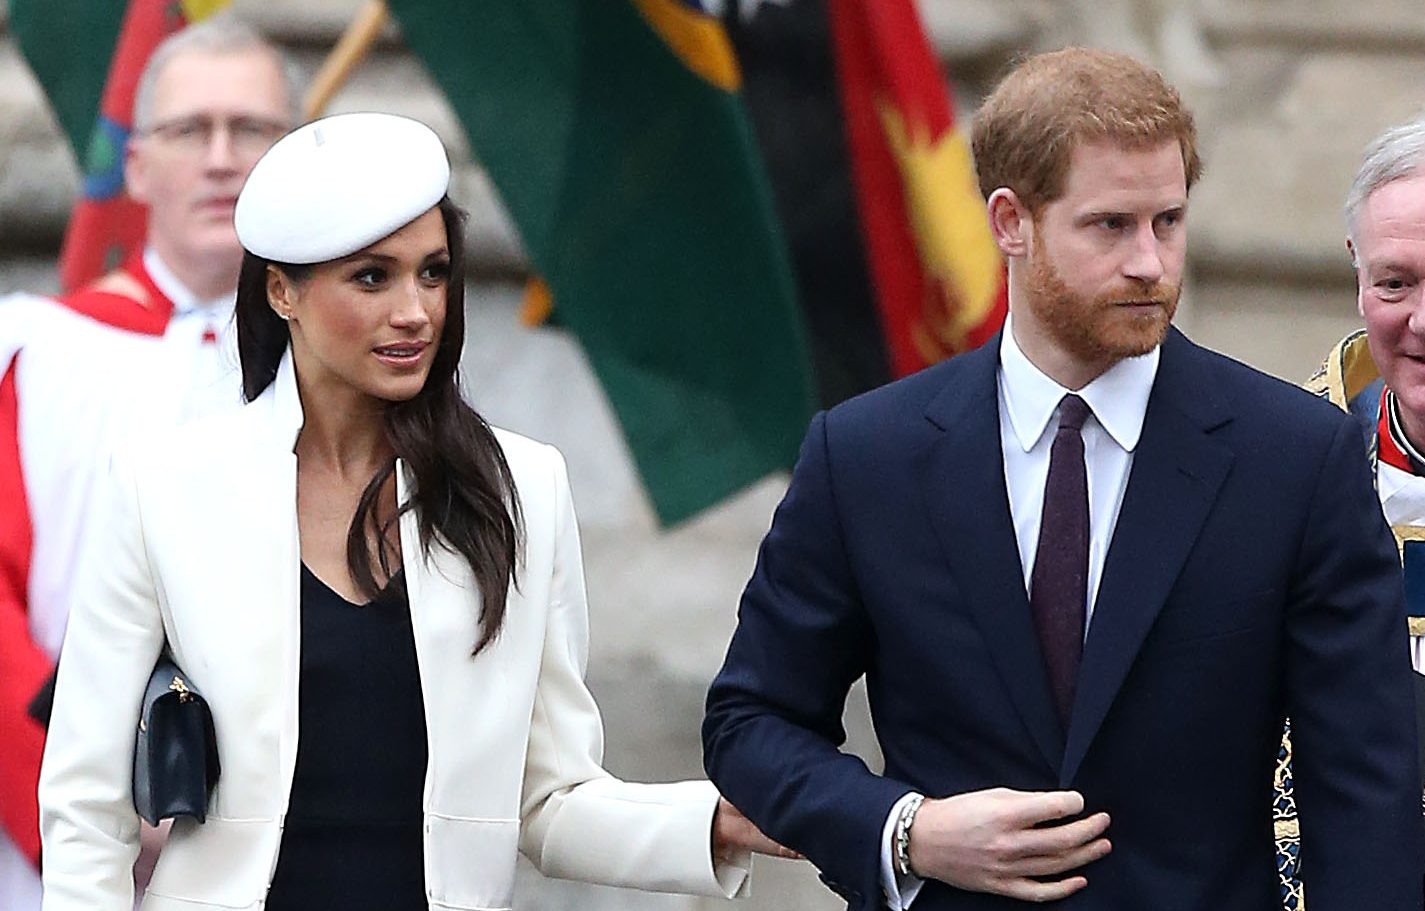 Armed Forces reveal role they'll play in Prince Harry and Meghan Markle's wedding